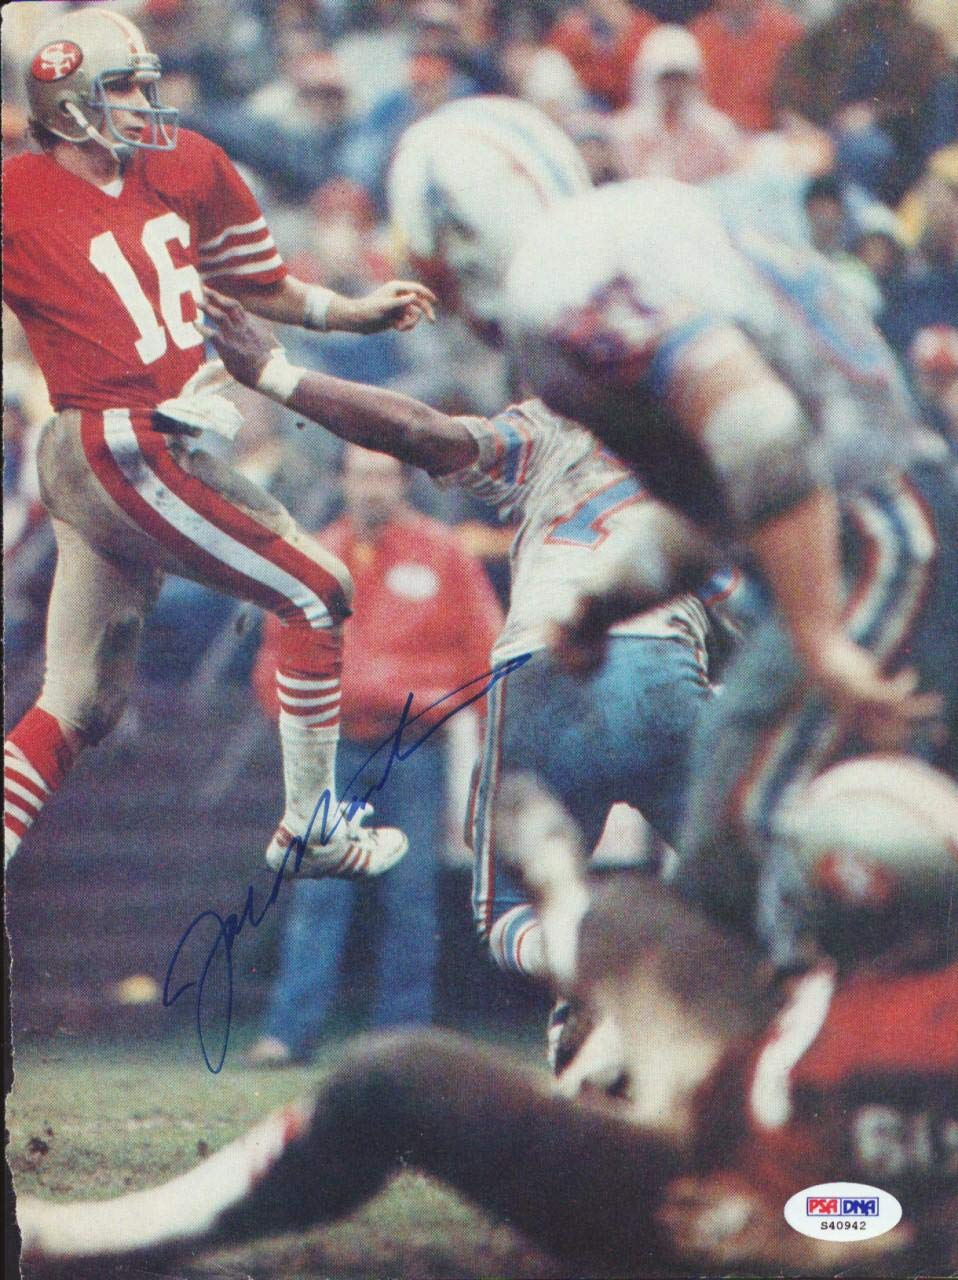 Joe Montana Autographed Magazine Page Photo San Francisco 49ers #S40942 PSA/DNA Certified Autographed NFL Magazines